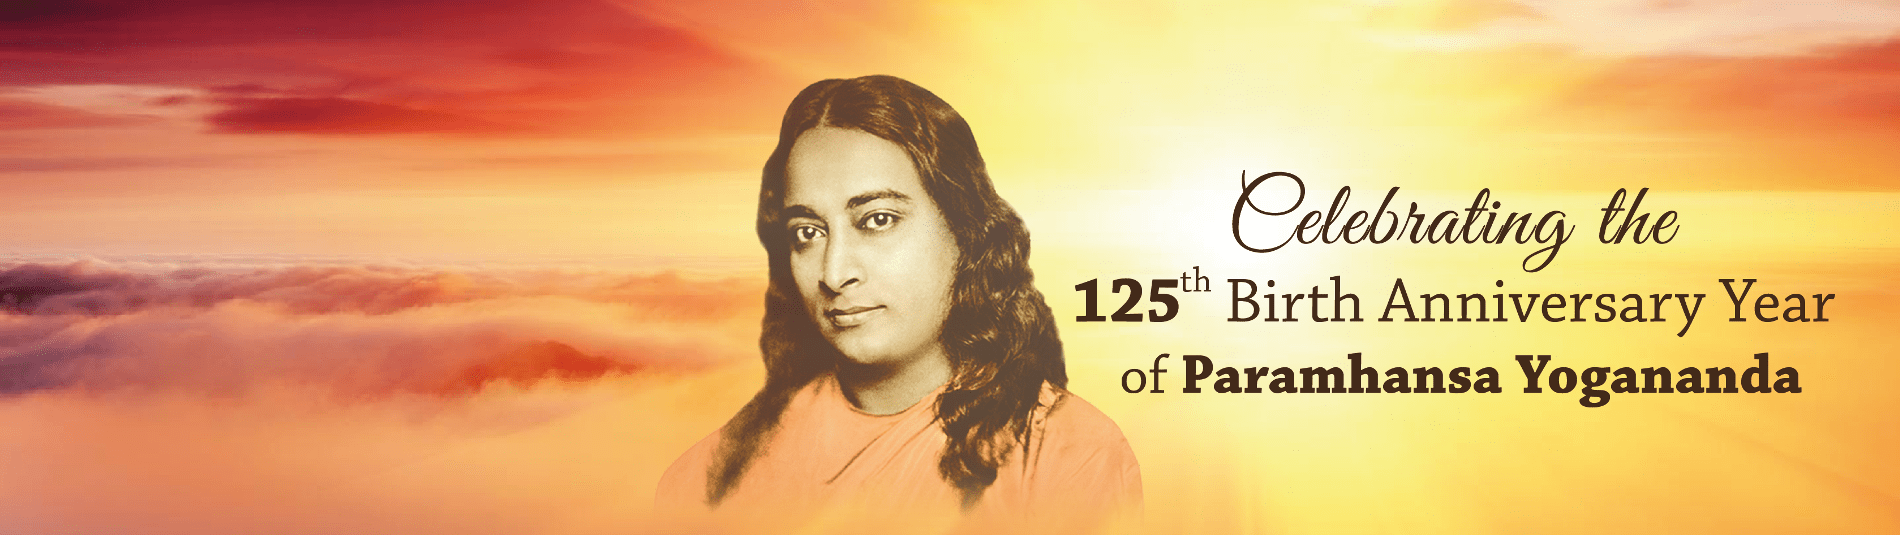 Celebrating the 125th birth anniversary of Paramhansa Yogananda